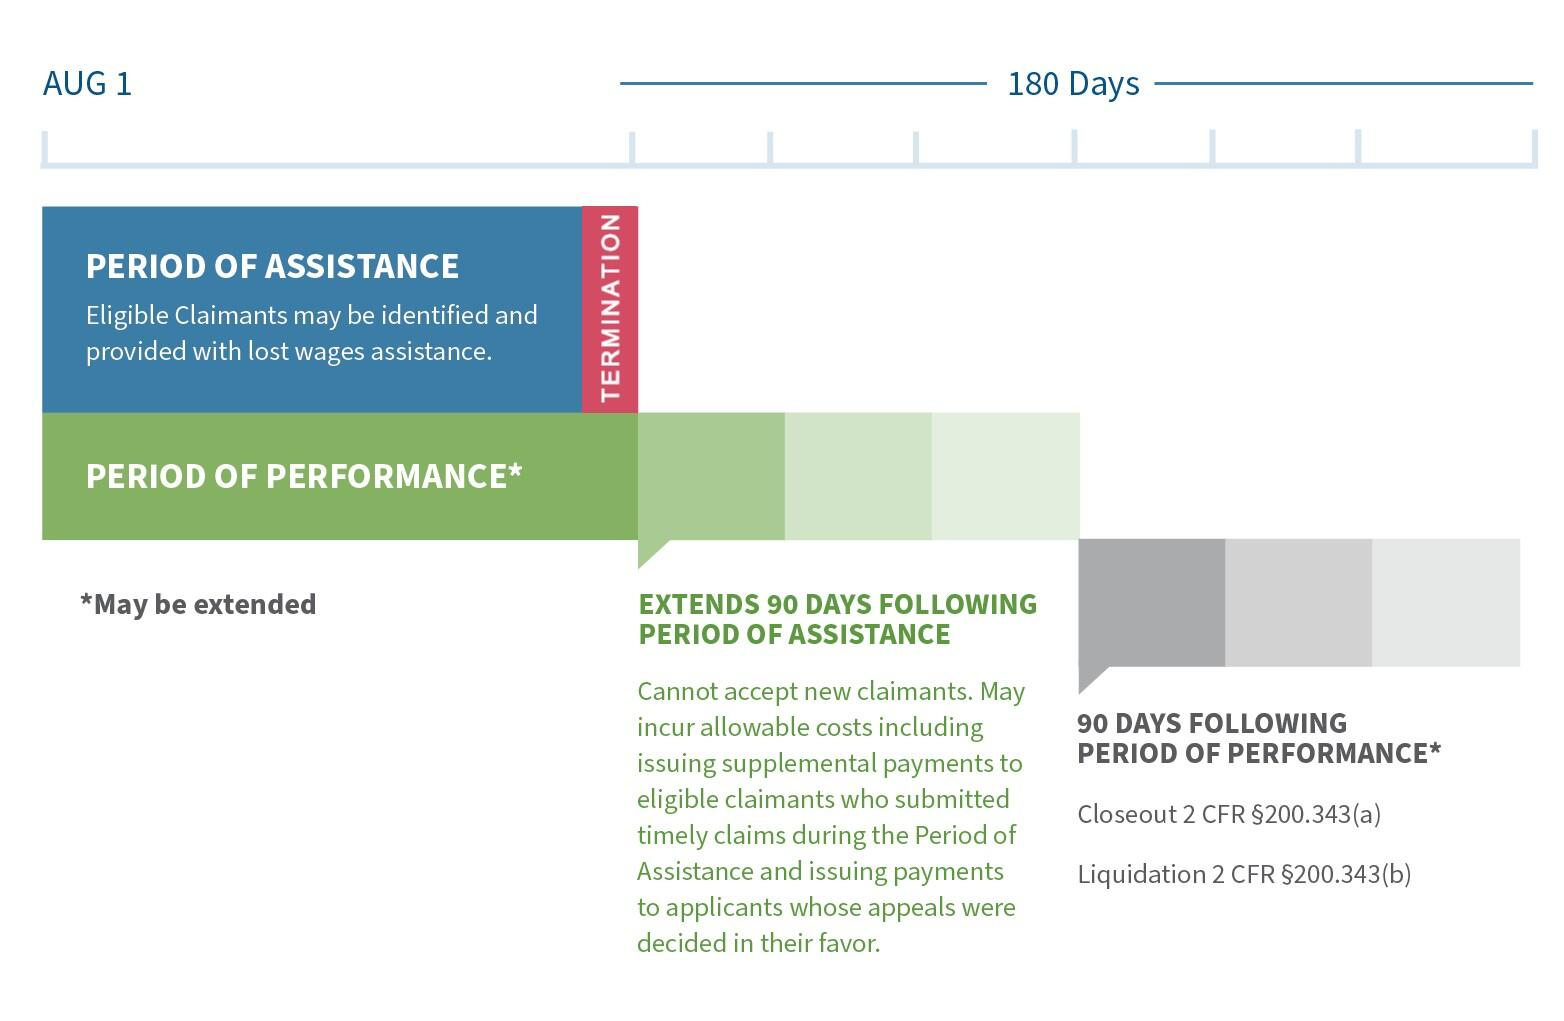 A timeline related to lost wages assistance, depicting the period of performance, period of assistance and 90 days following the period of performance